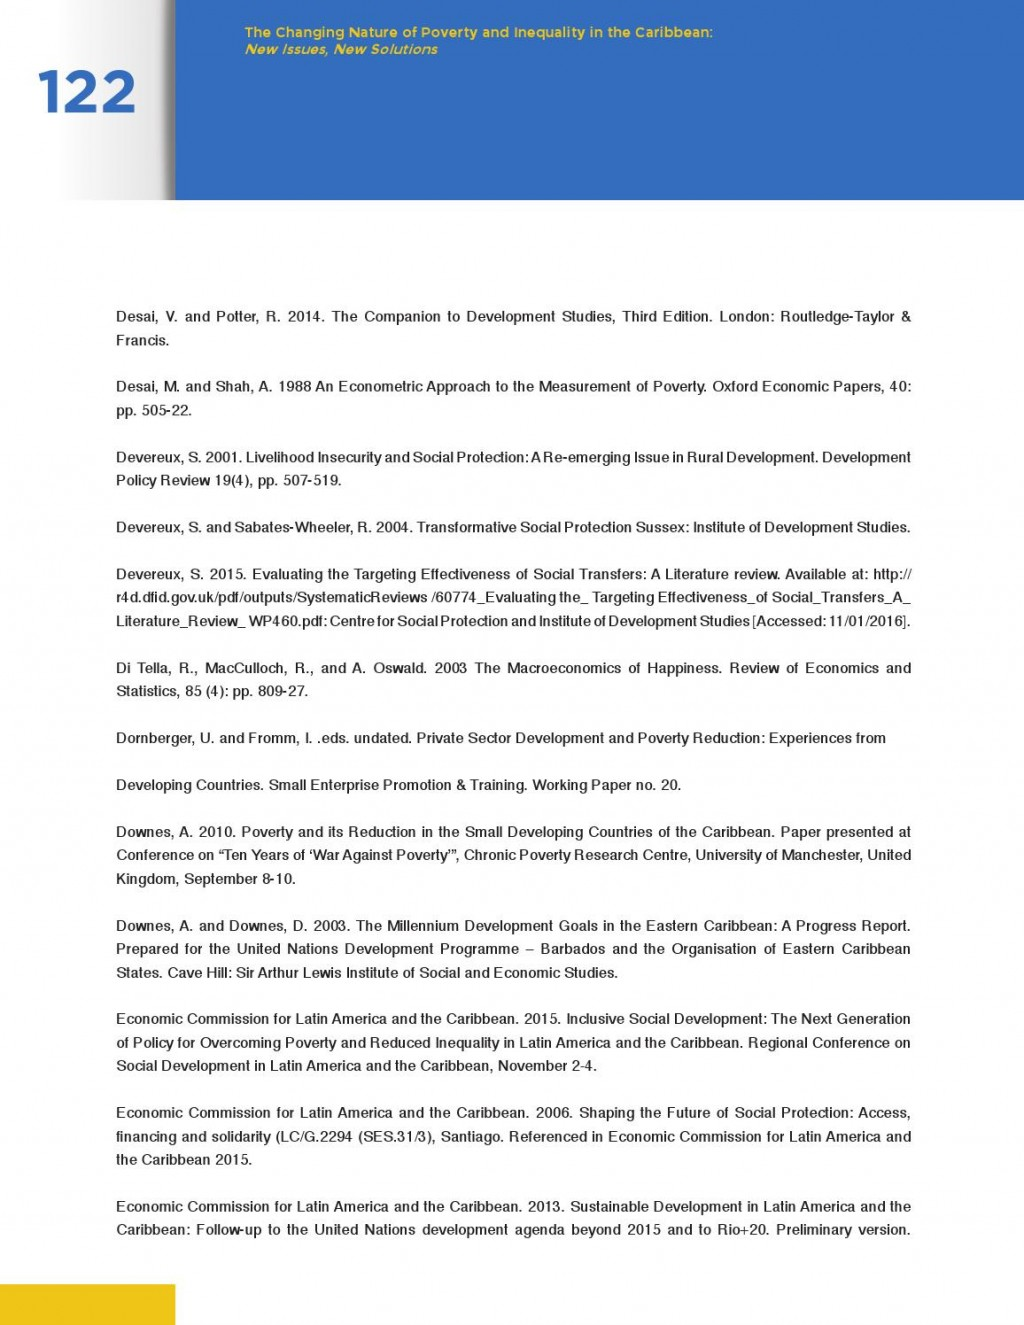 009 Economic Researchs Topics Page 122 Formidable Research Papers Good For Pdf Large